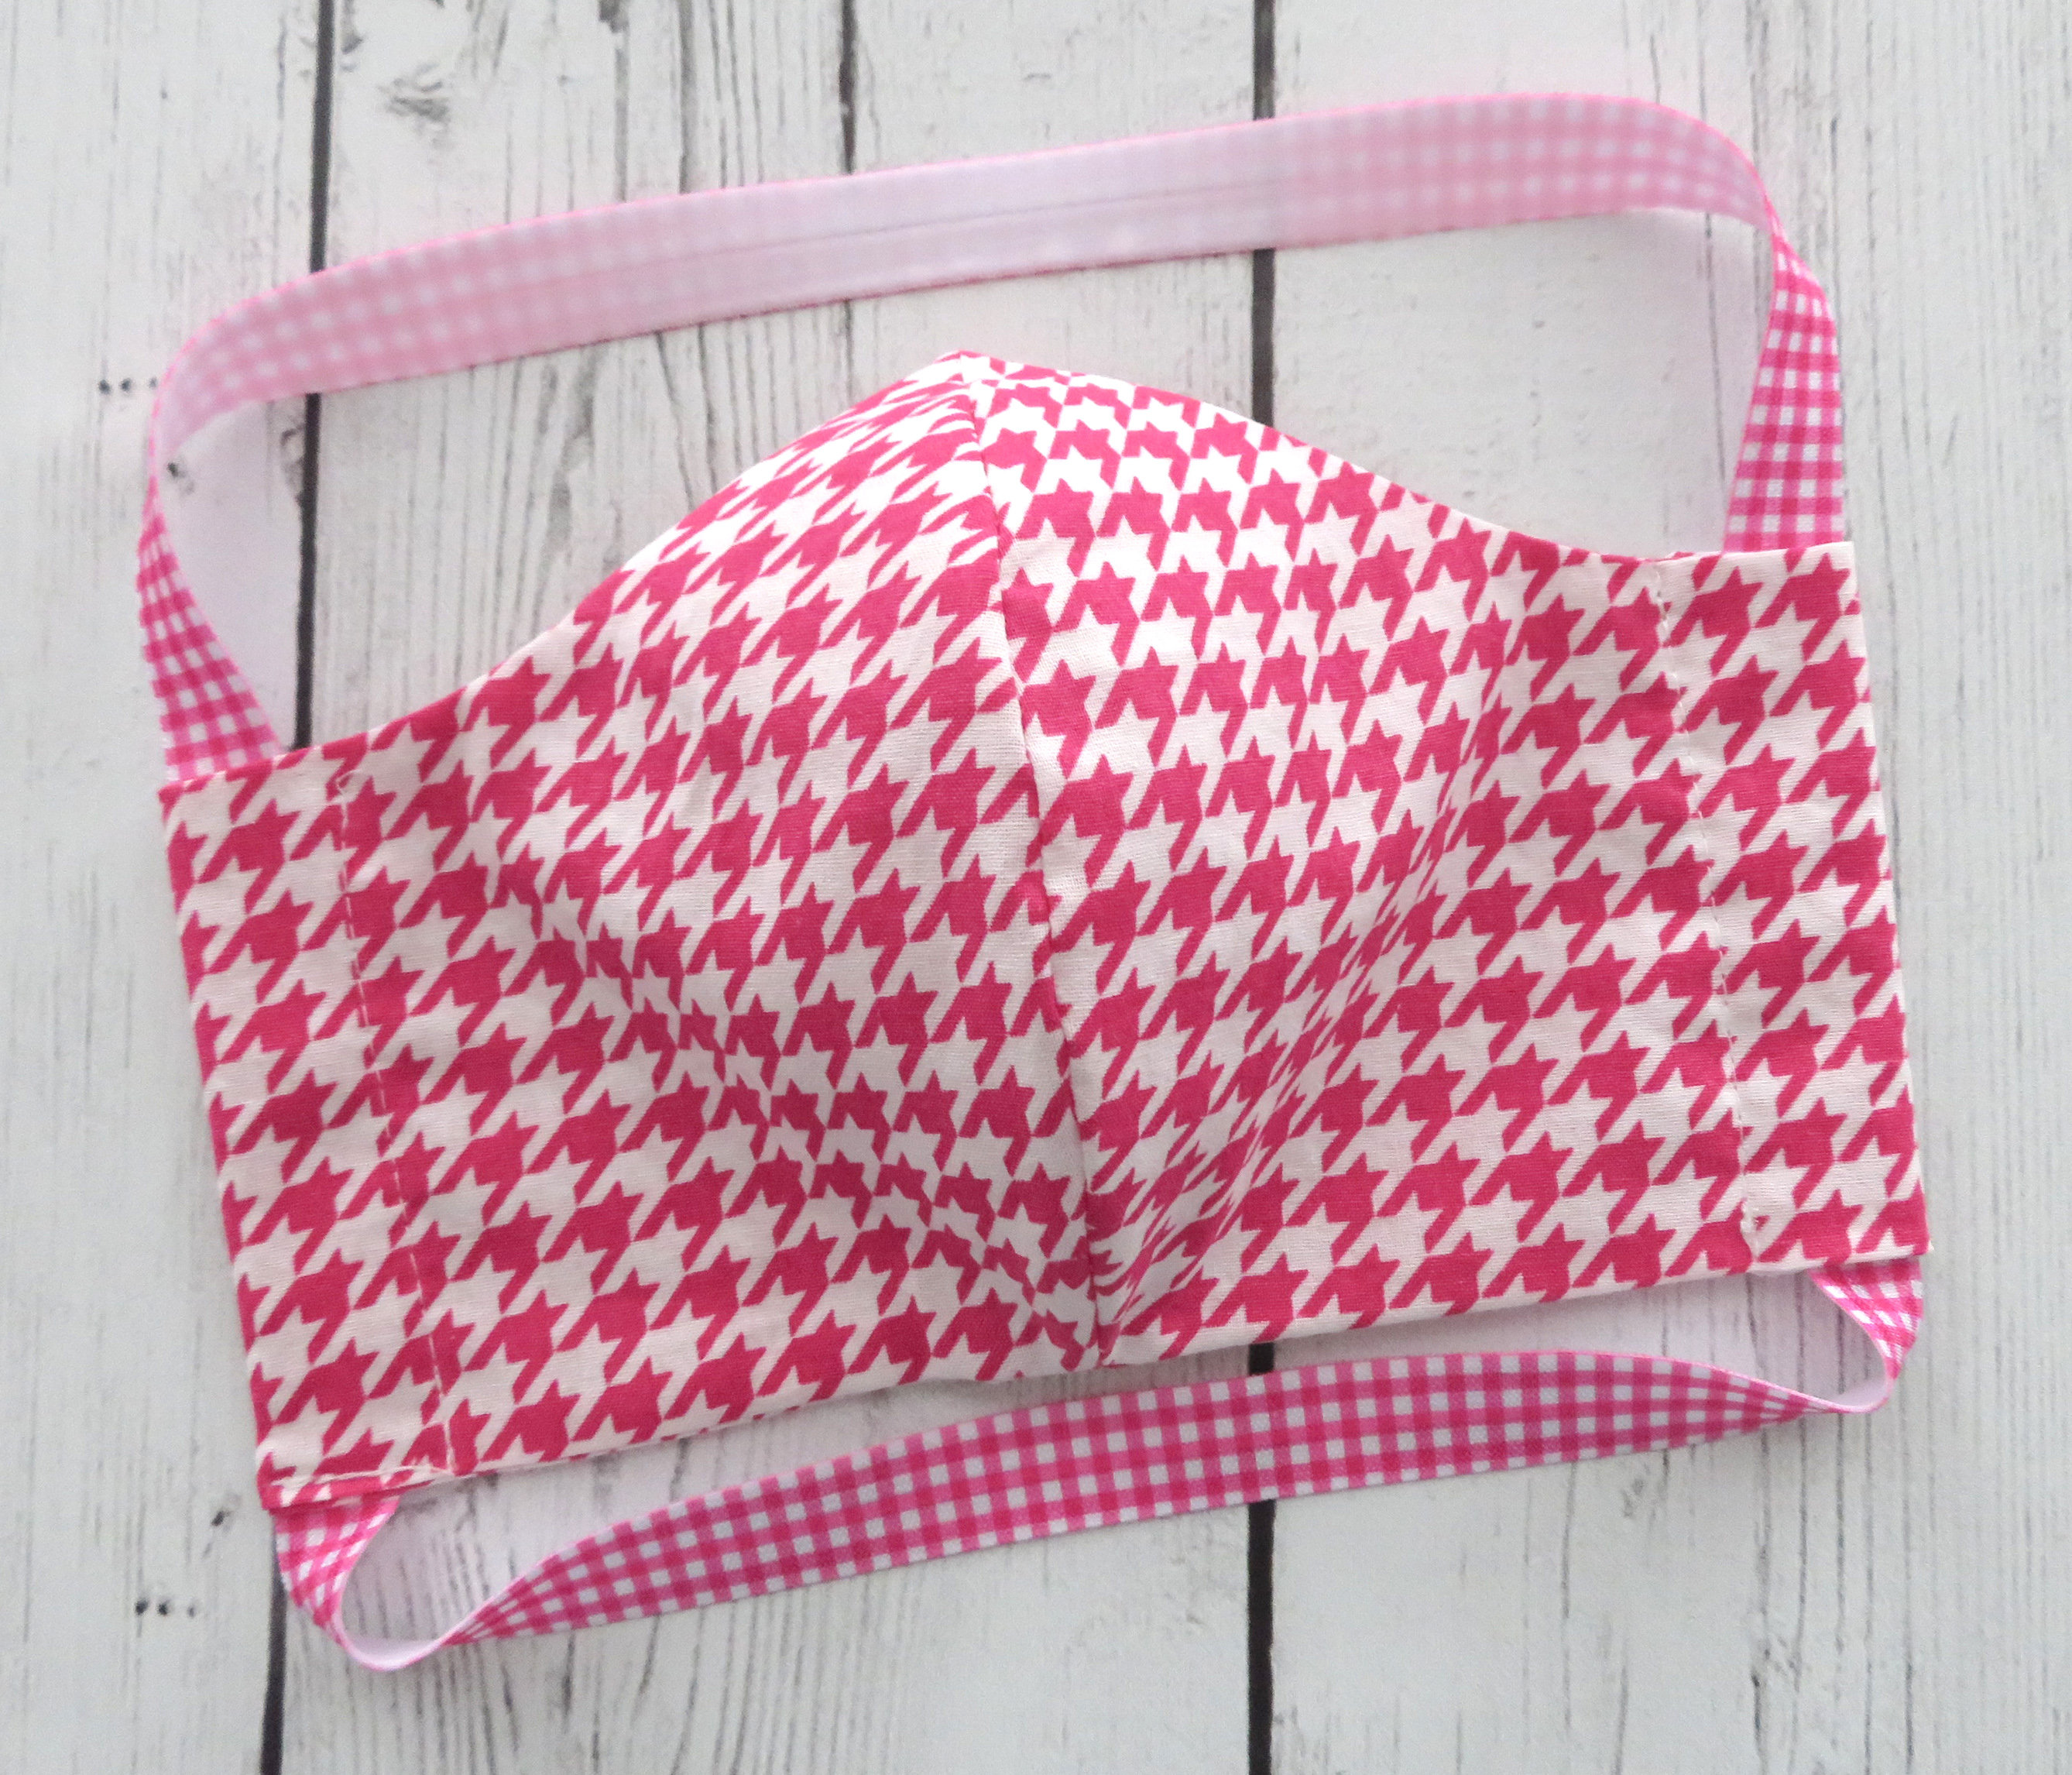 Hot Pink Houndstooth Face Mask - READY TO SHIP! - handmade cotton face mask  for adult, washable and re-usable, ear saver design